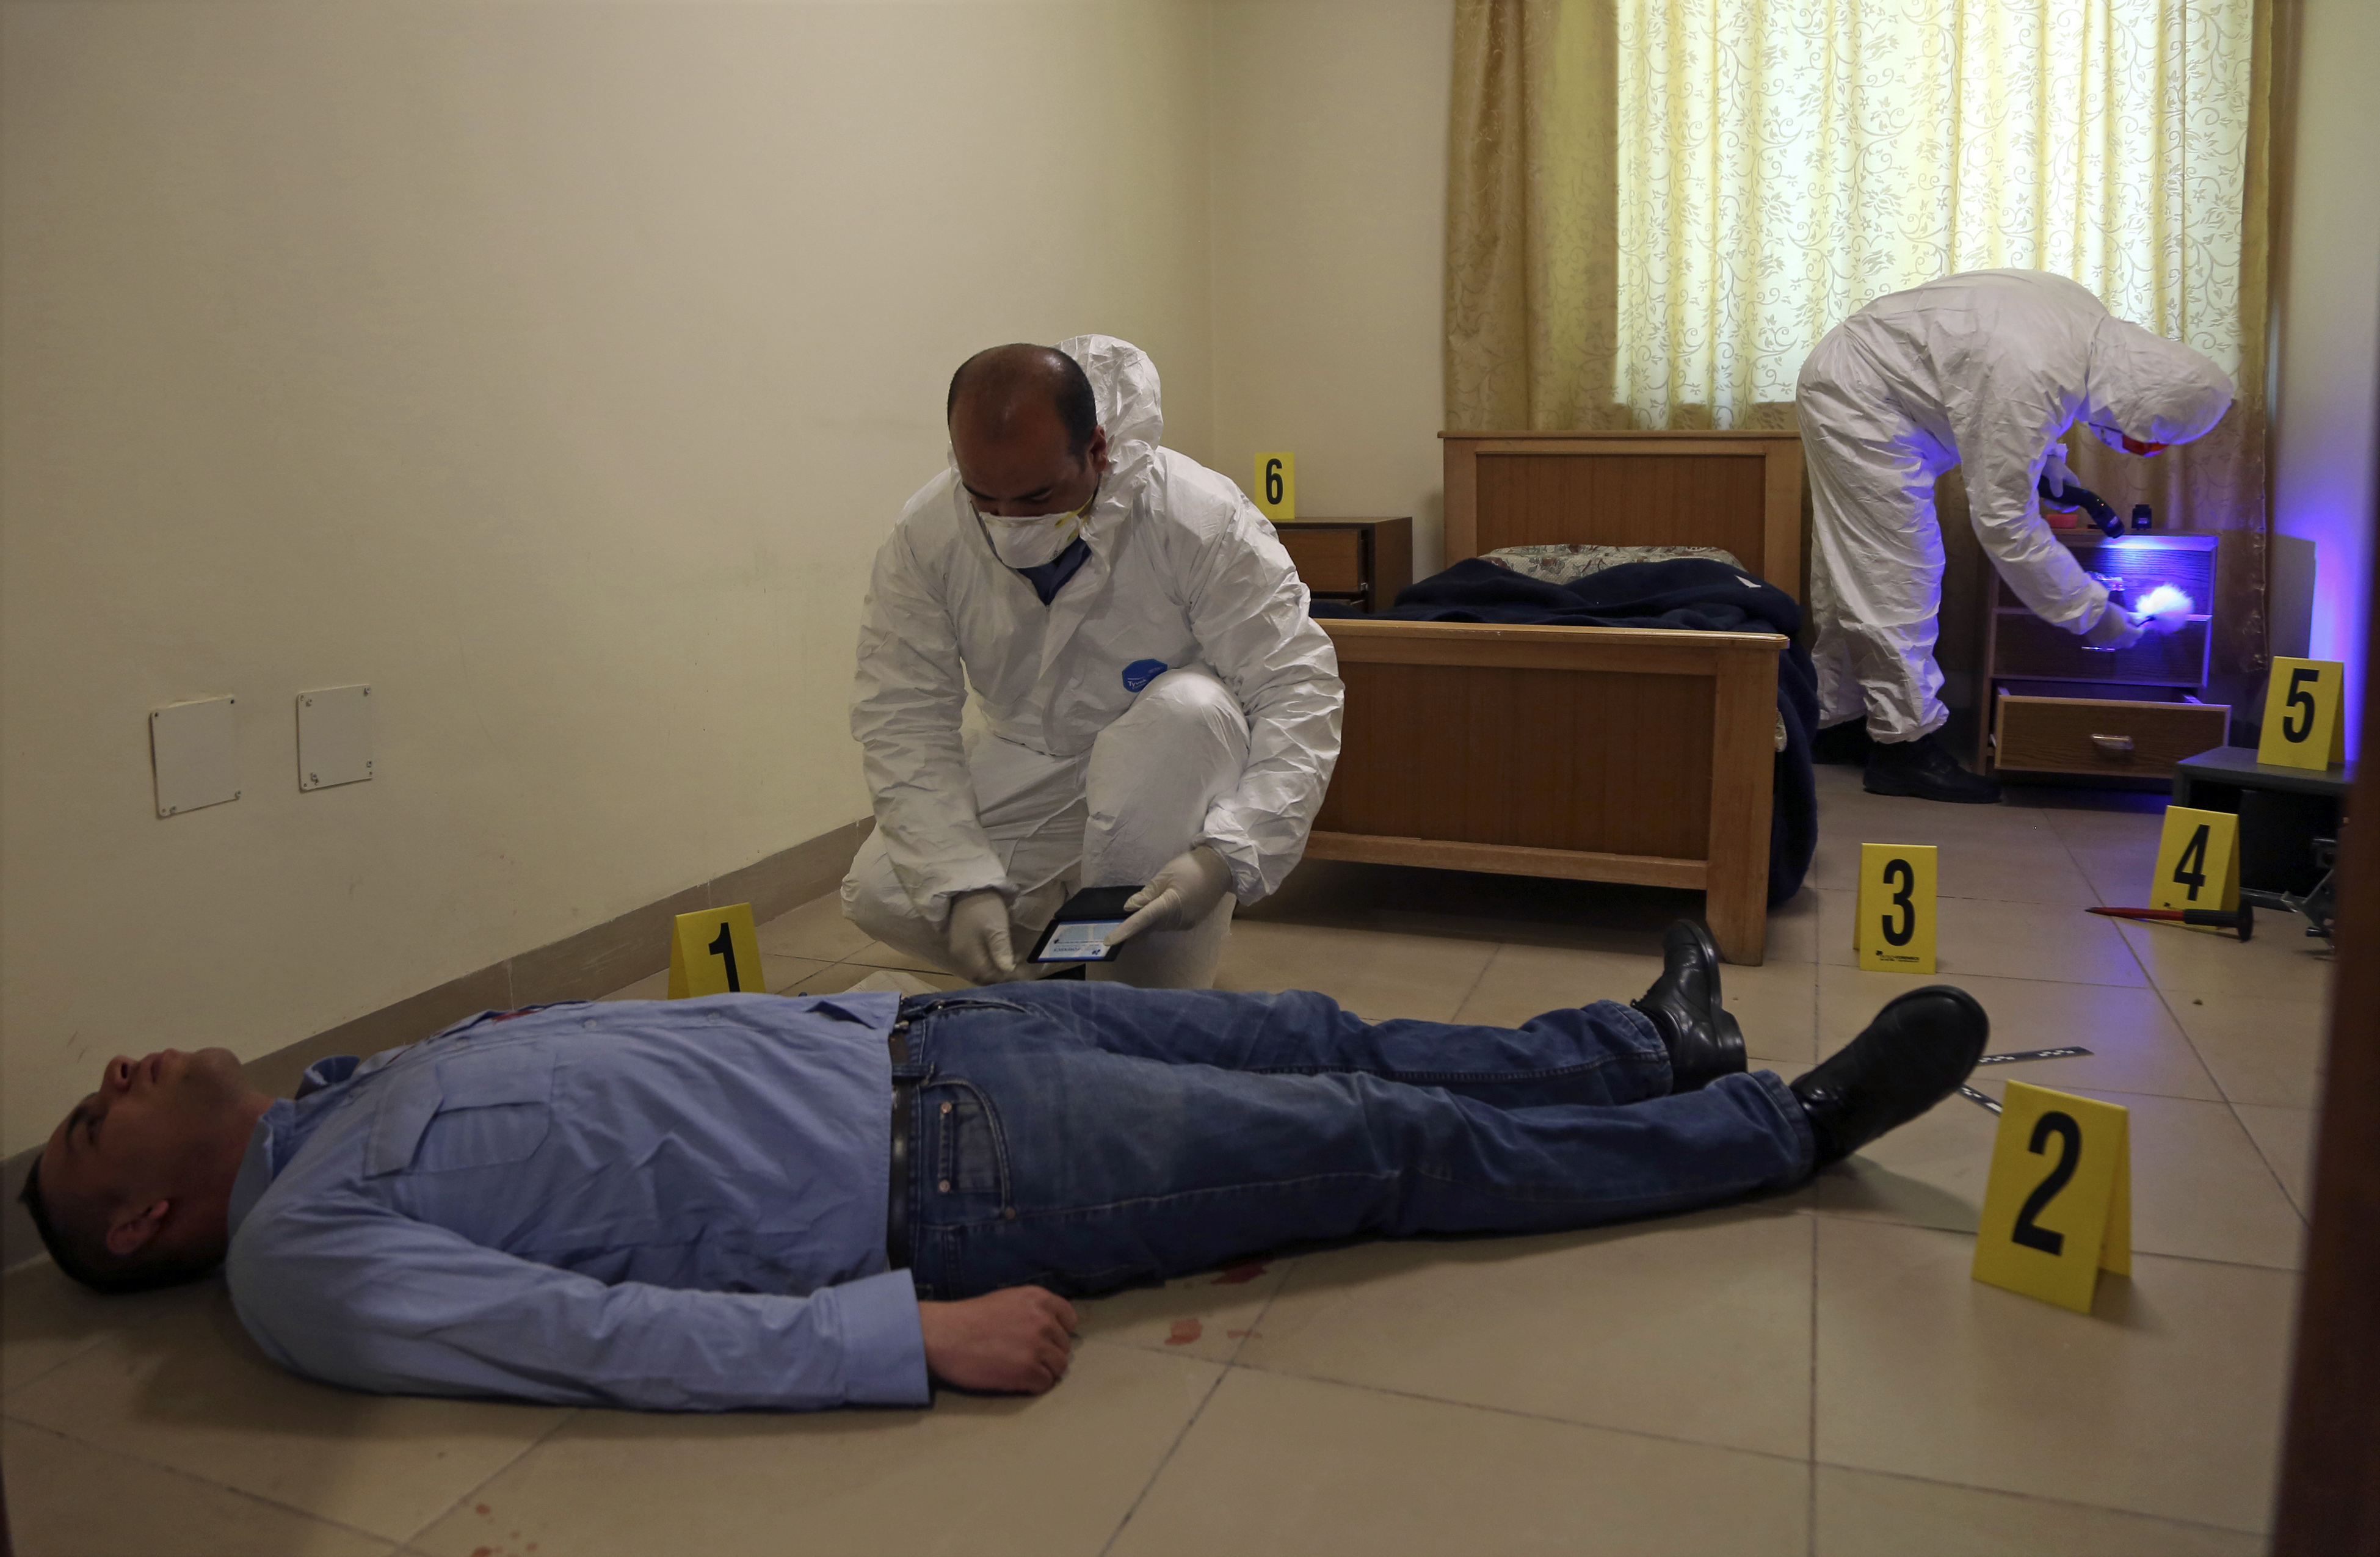 Jordanian crime scene technicians dust for fingerprints as part of a drill held at the nation's Forensic Science Laboratory, in Amman, Jordan, on March 19, 2018. The lab is part of an upgrade of Jordan's fight against suspected militants and criminals. (Raad Adayleh/AP)